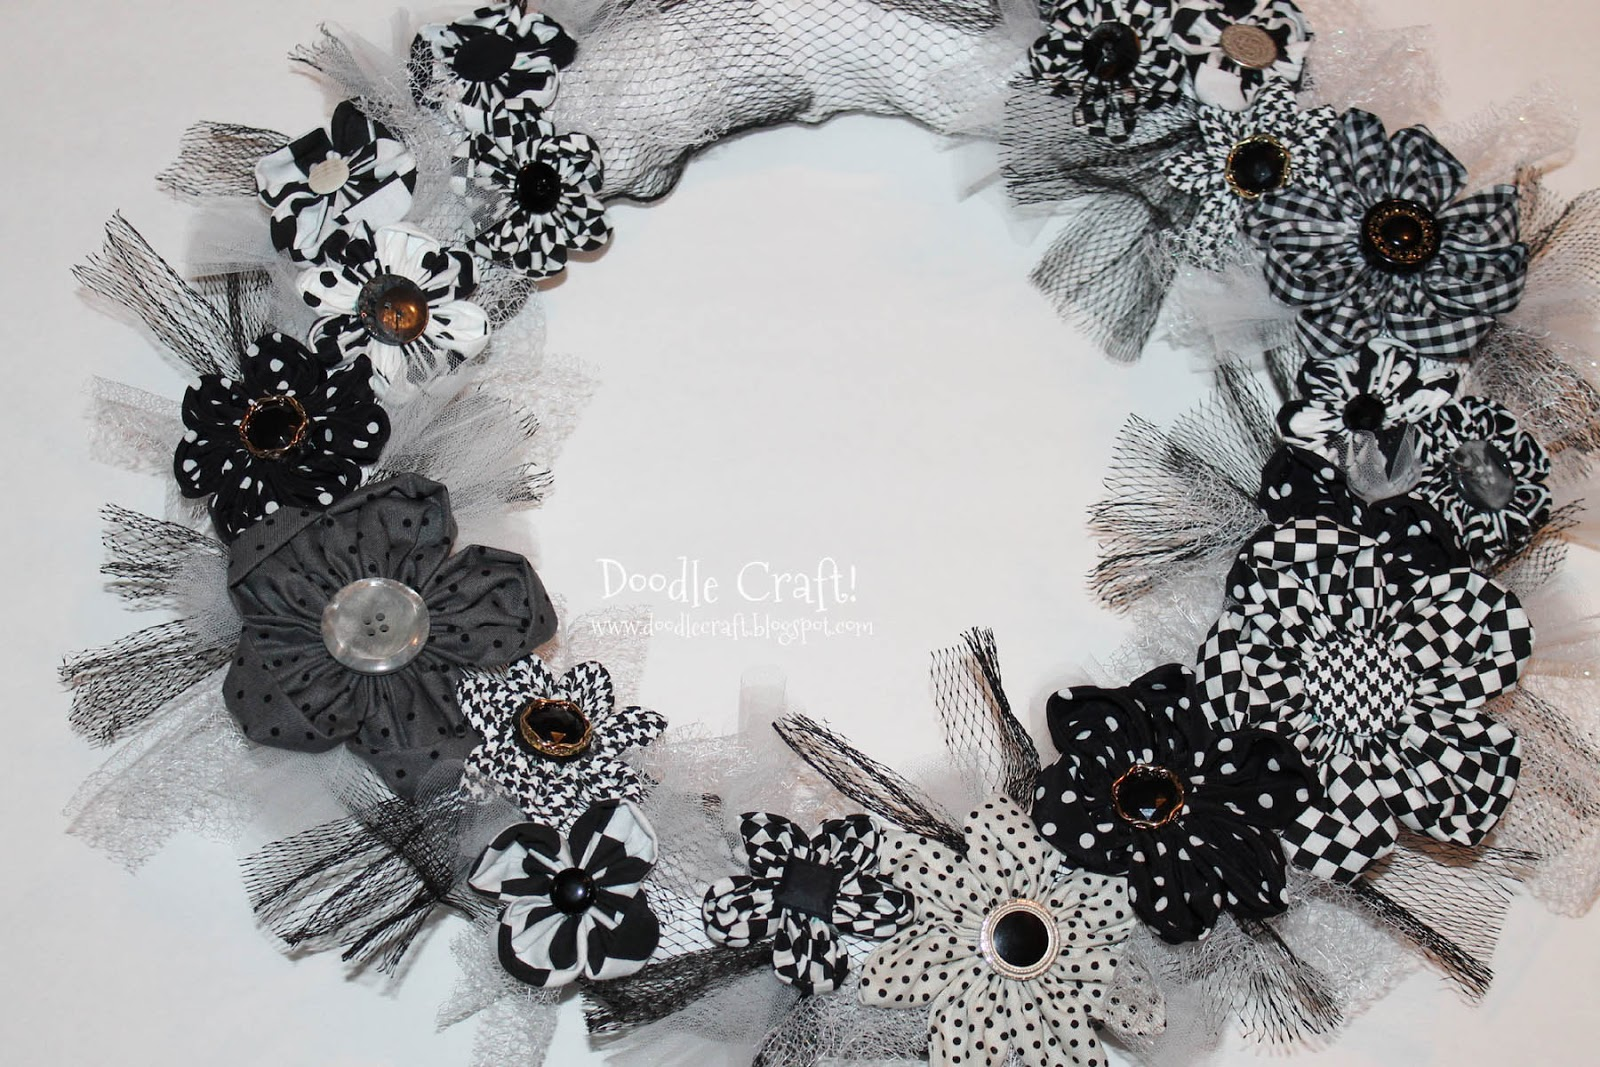 Black and white floral wreath stock vector image 65241515 - Doodlecraft Black And White Fabric Flower Wreath